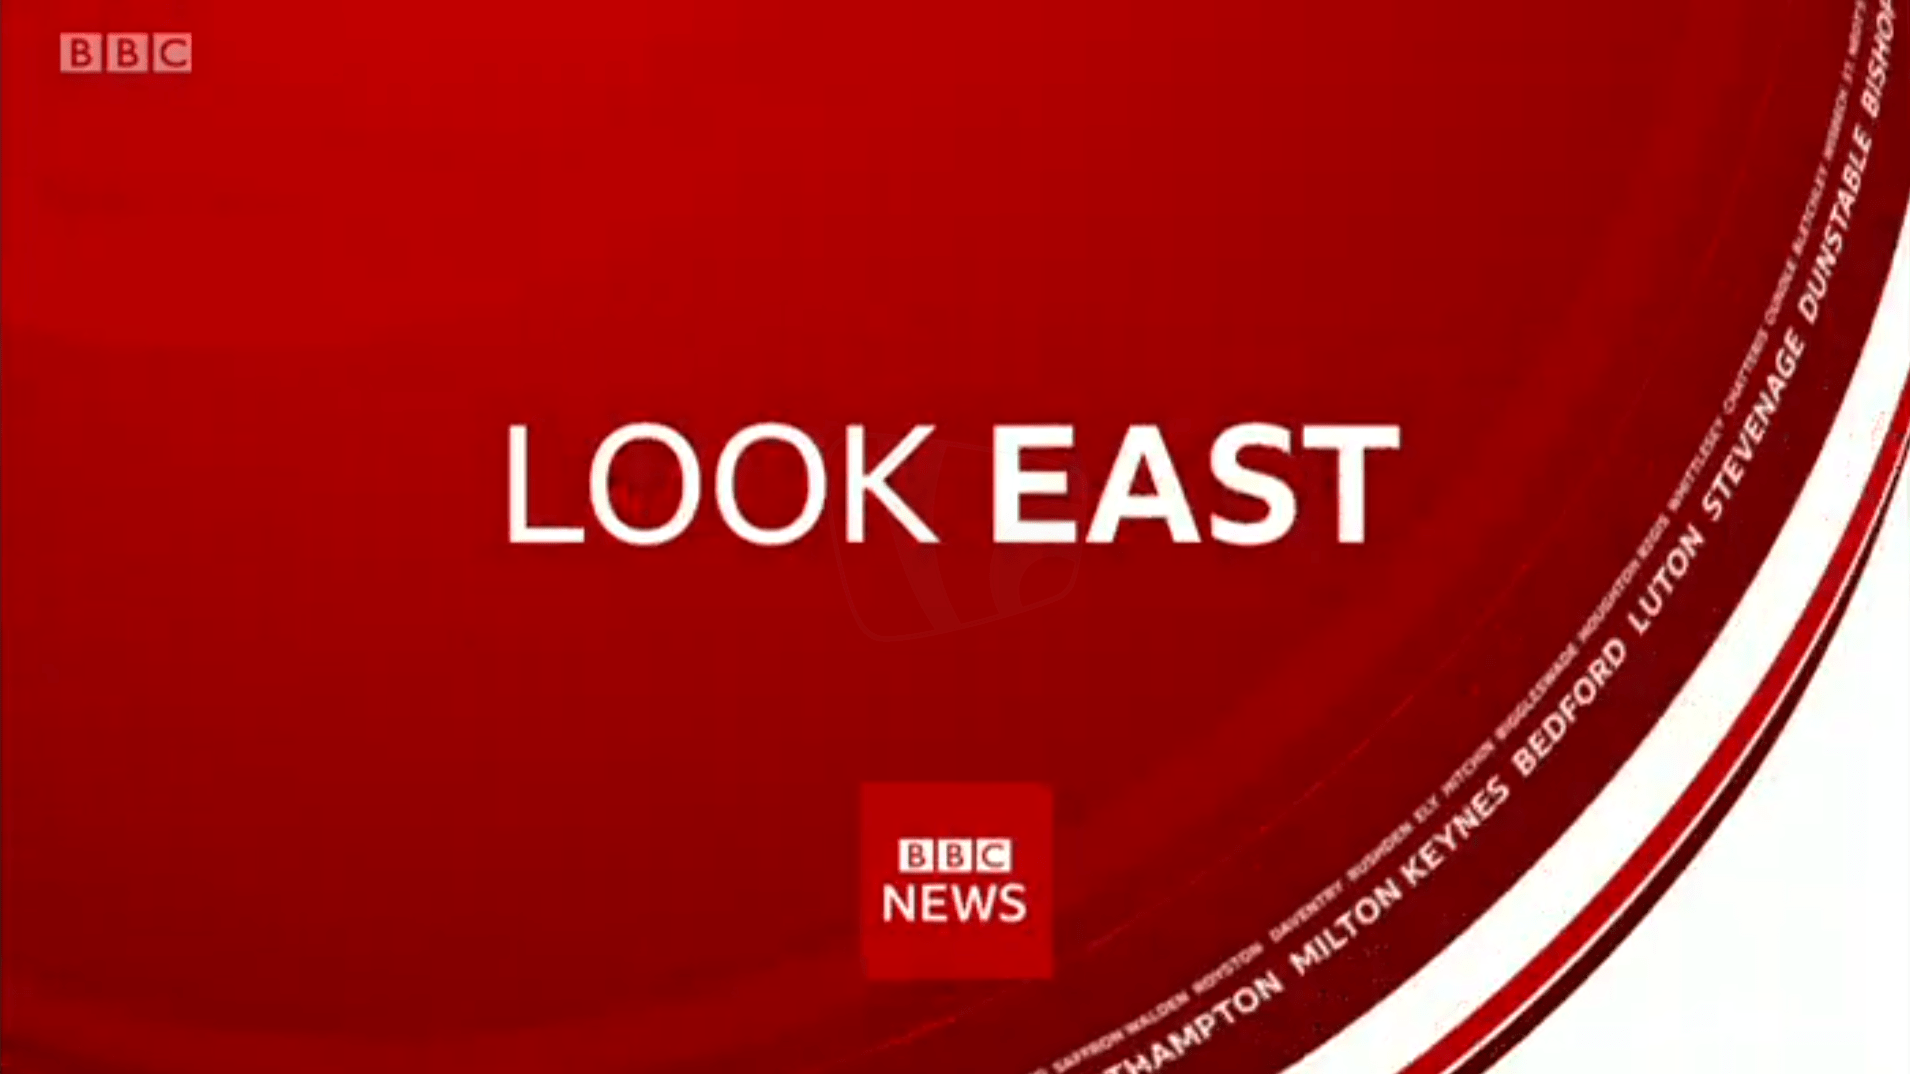 PICTURED: BBC Look East (Cambridge) opening titles.